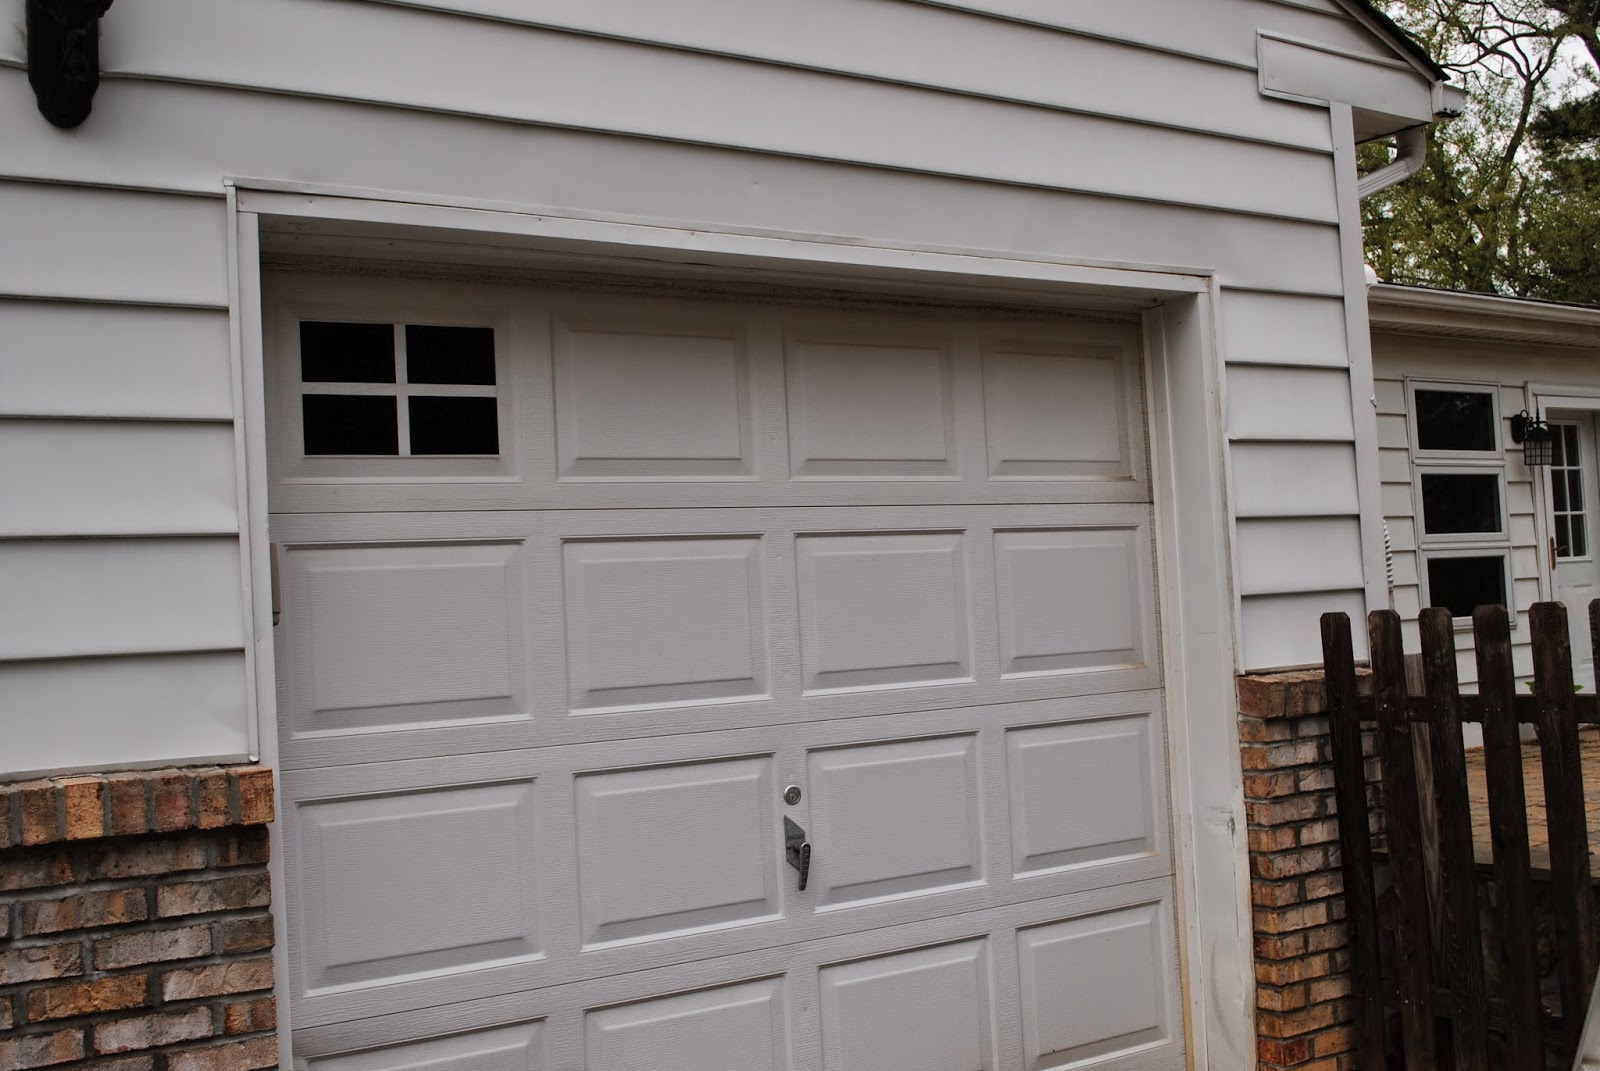 Carriage garage doors - Vinyl Faux Carriage Garage Doors Diy Do It Yourself Free